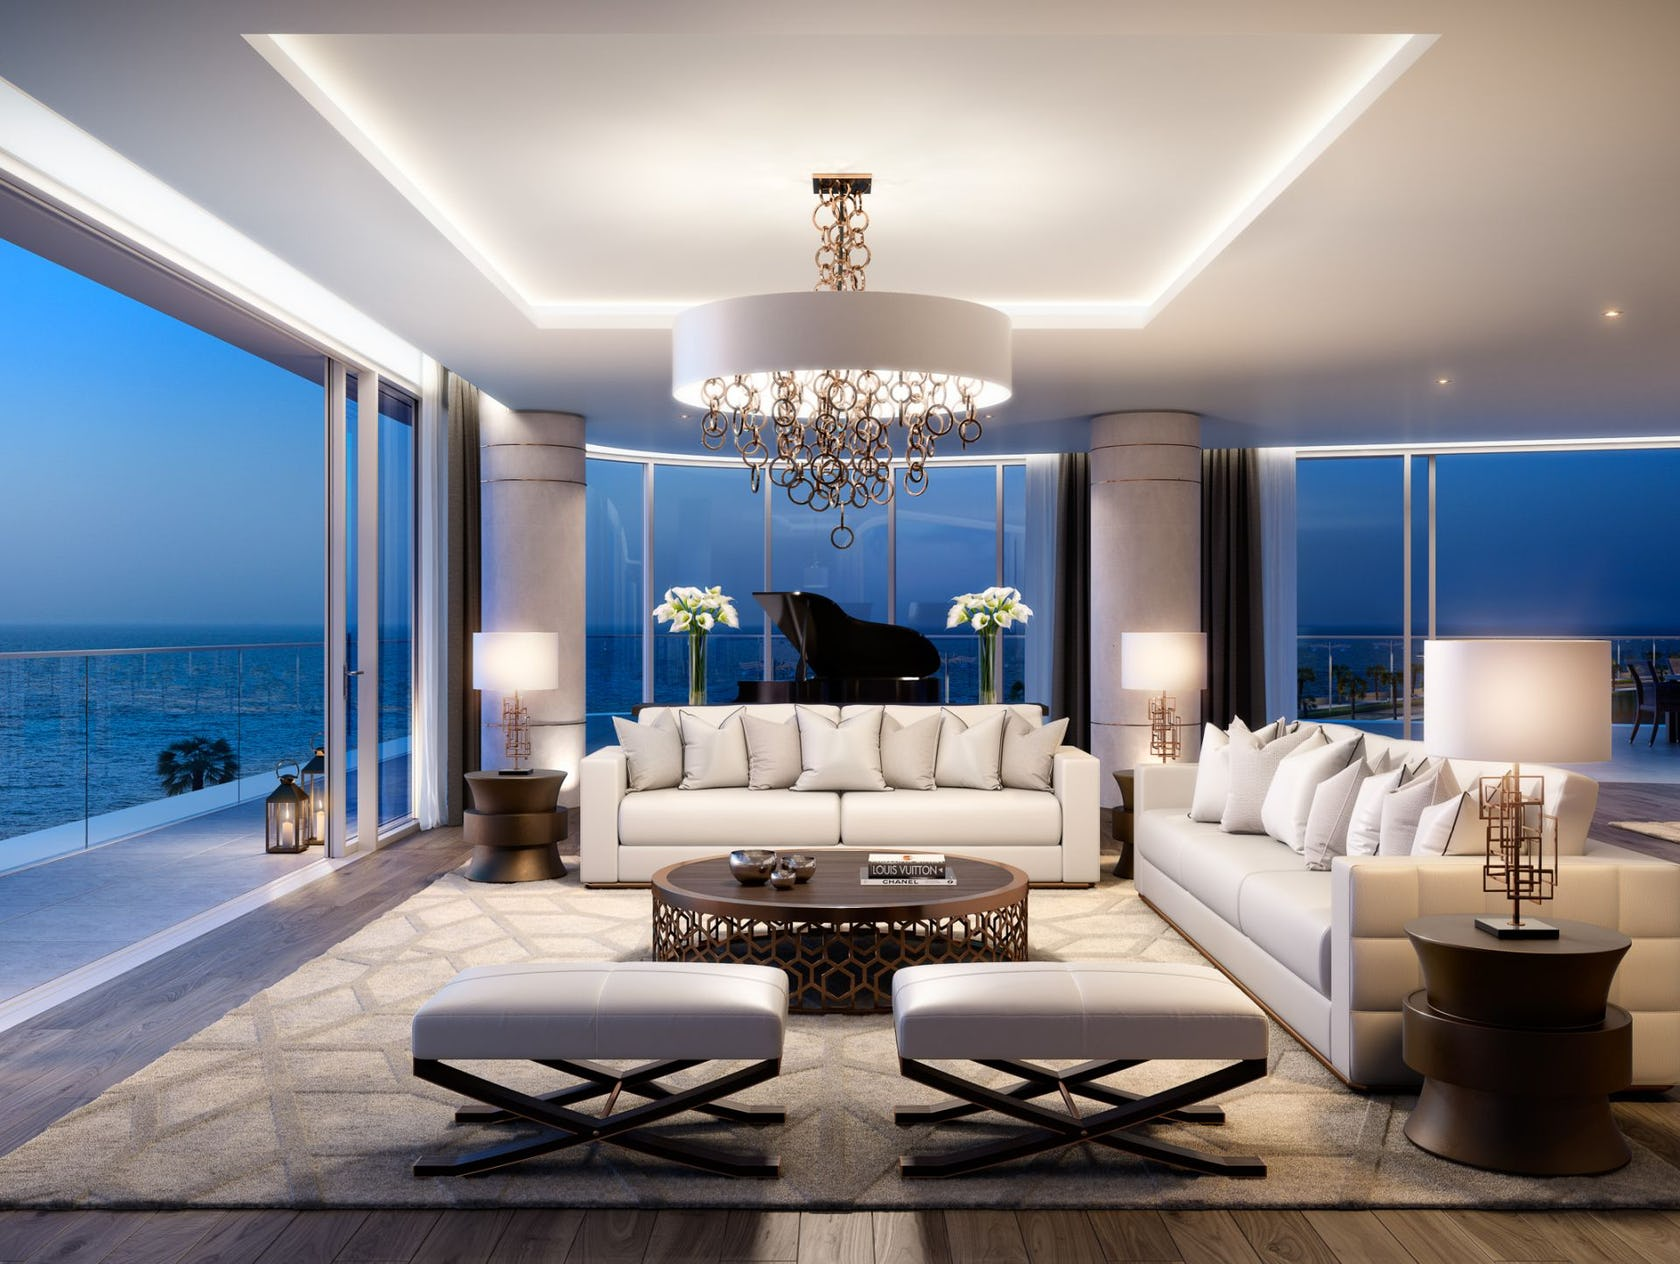 living room indoors room furniture interior design housing building table couch